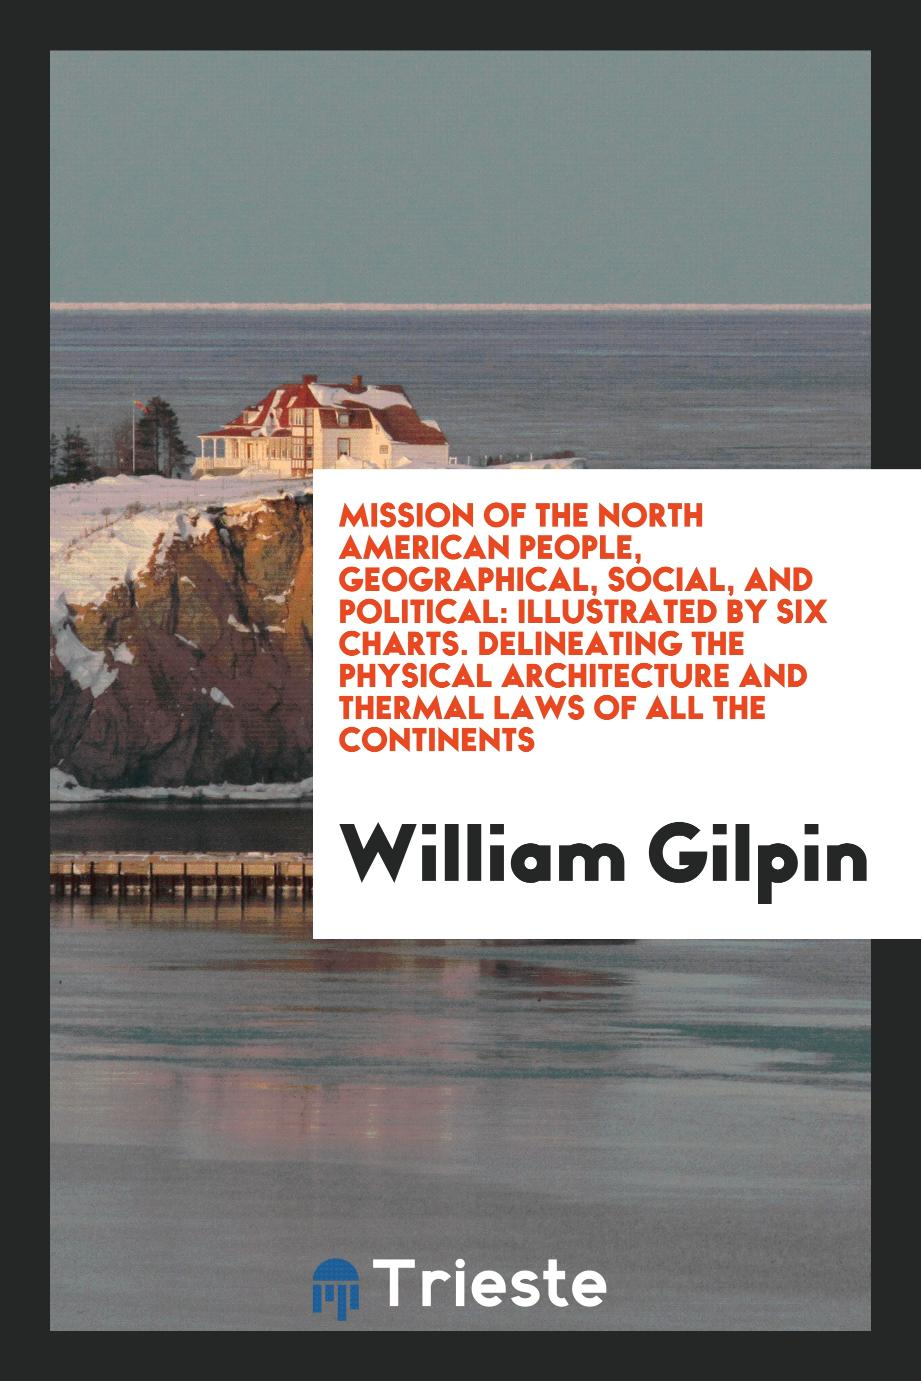 Mission of the North American People, Geographical, Social, and Political: Illustrated by Six Charts. Delineating the Physical Architecture and Thermal Laws of All the Continents